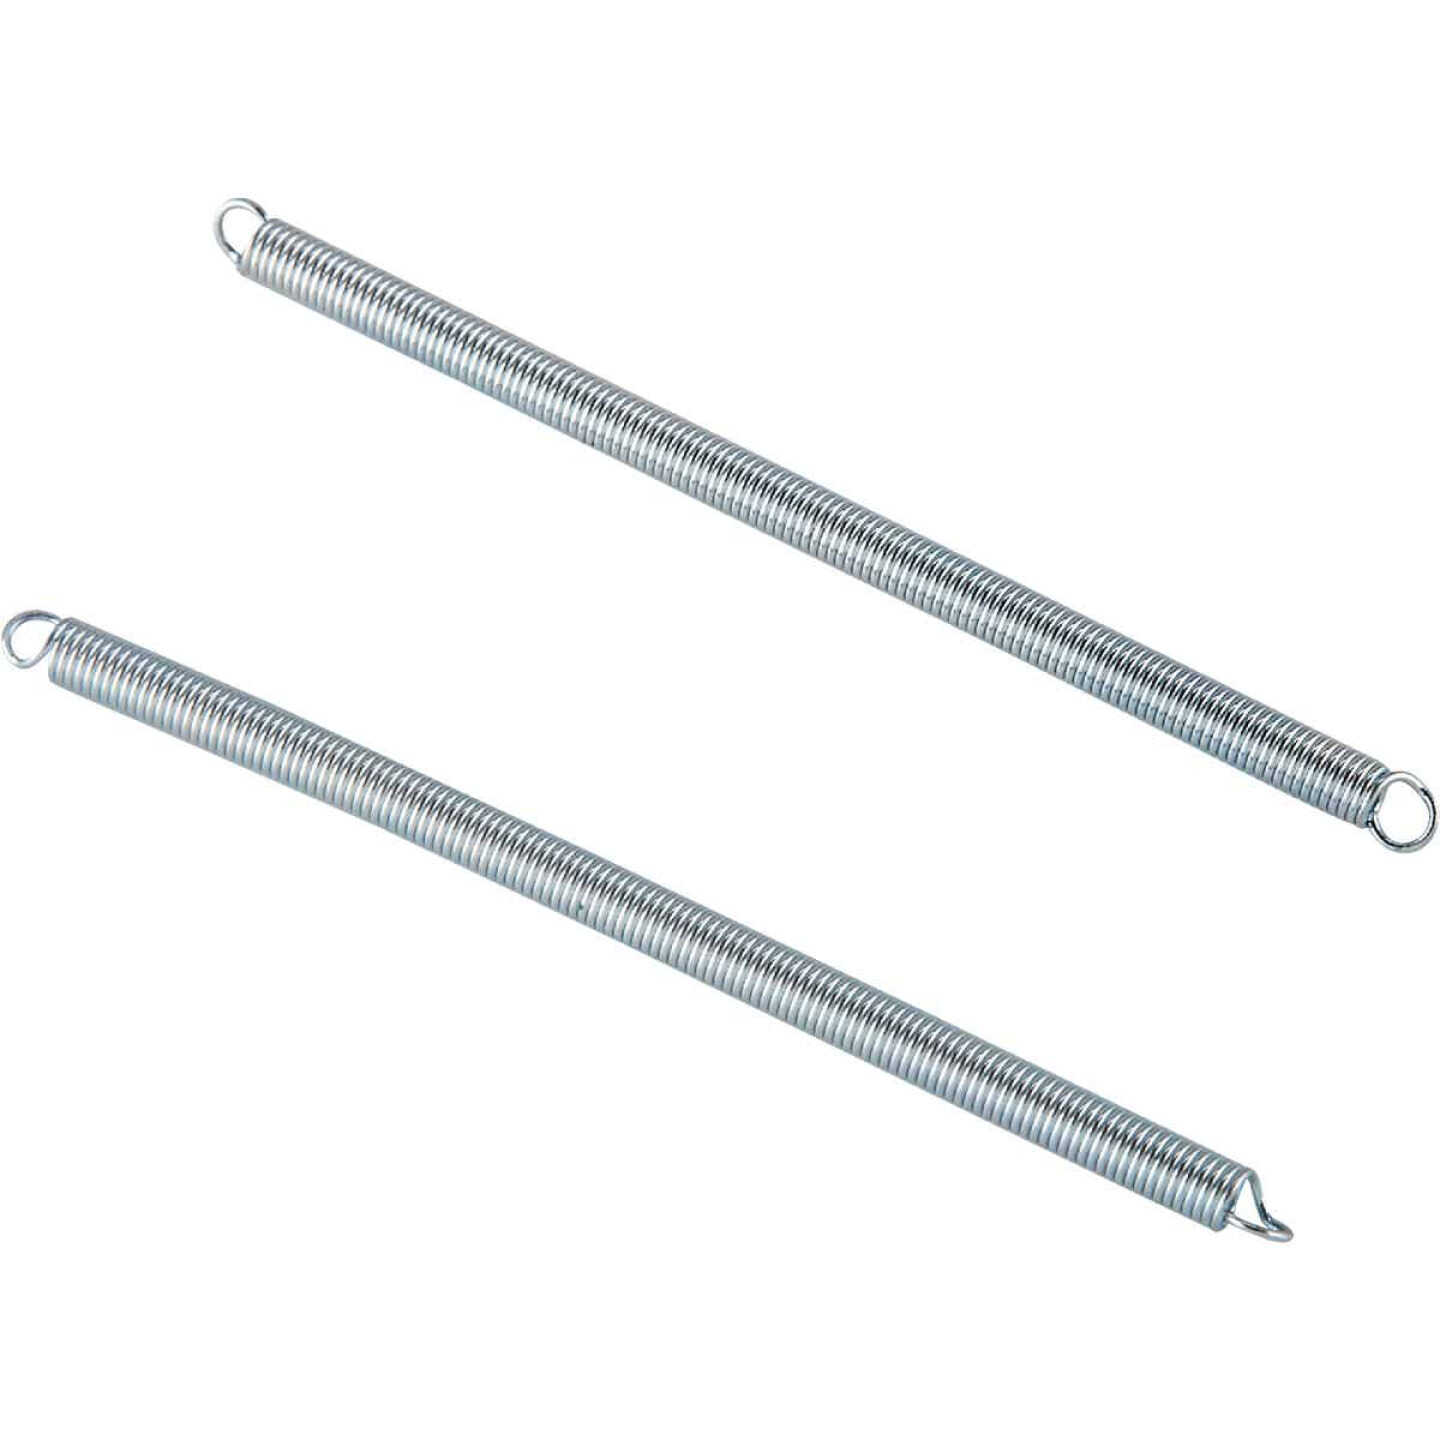 Century Spring 5 In. x 1/4 In. Extension Spring (2 Count) Image 1